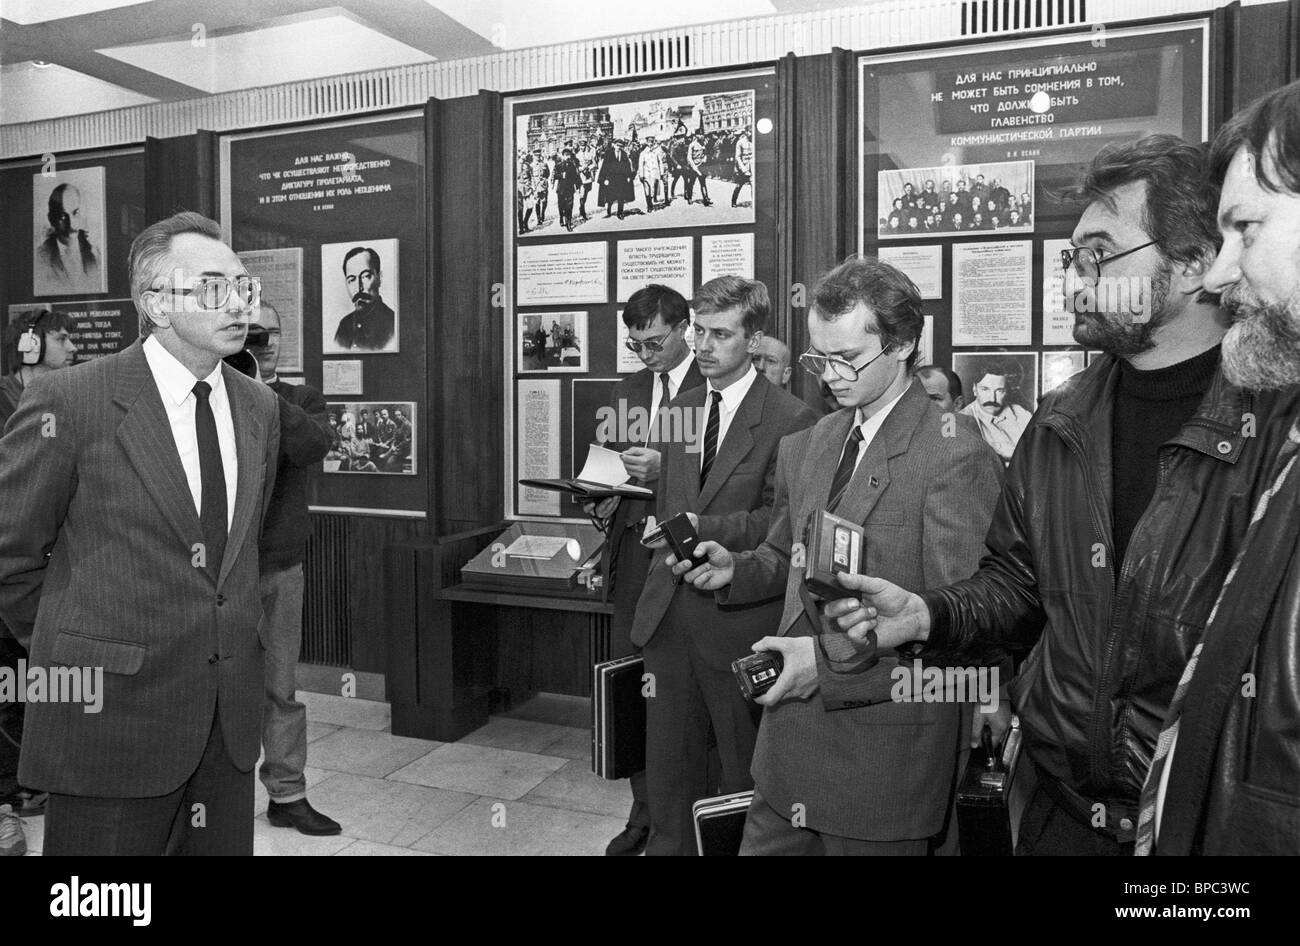 KGB Museum opened in Moscow. 1990 - Stock Image